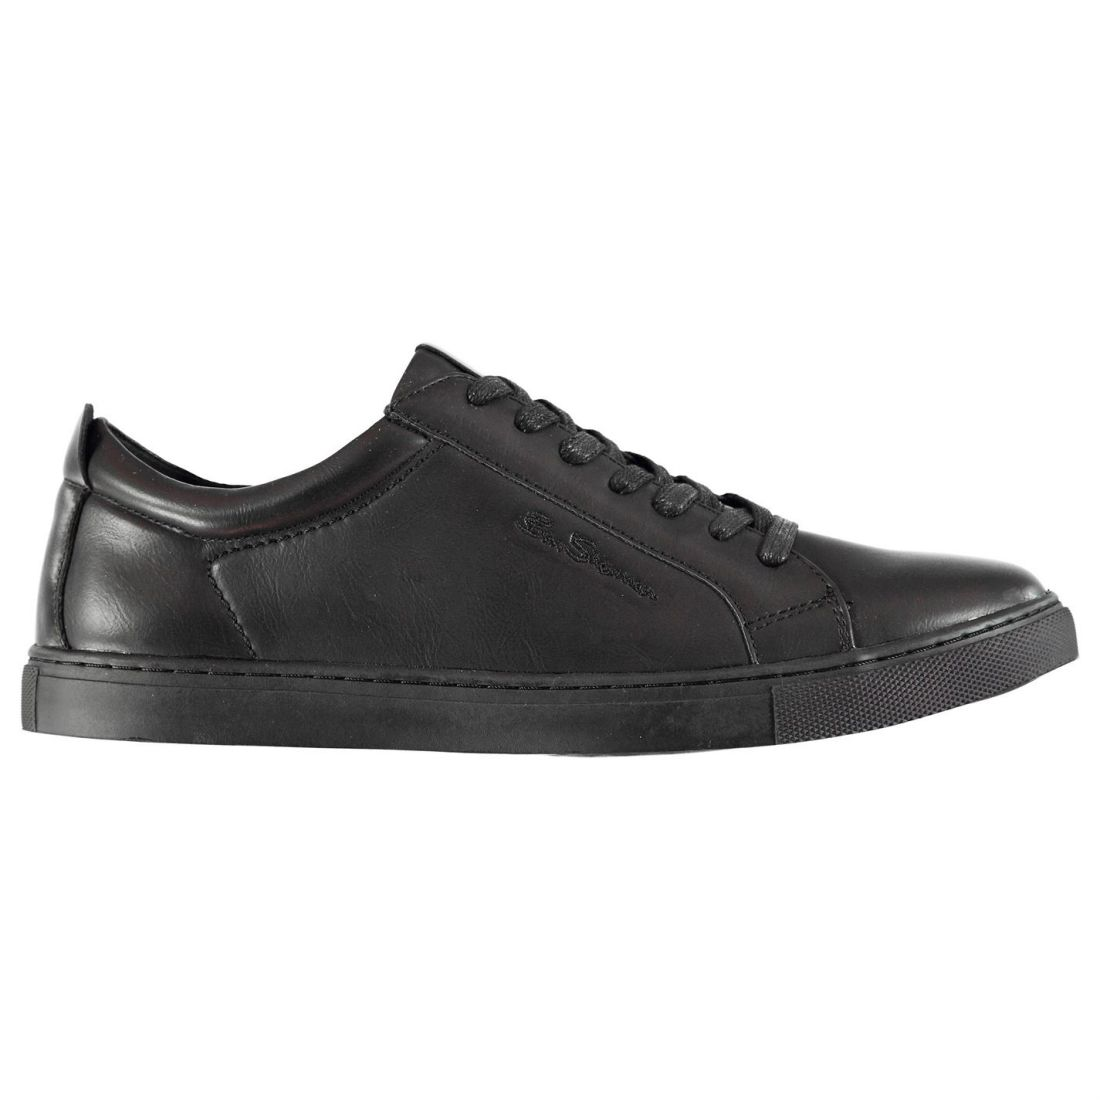 Ben-Sherman-Mens-Trophy-Fashion-Trainers-Low-Top-Lace-Up-Casual-Shoes-Leather thumbnail 5